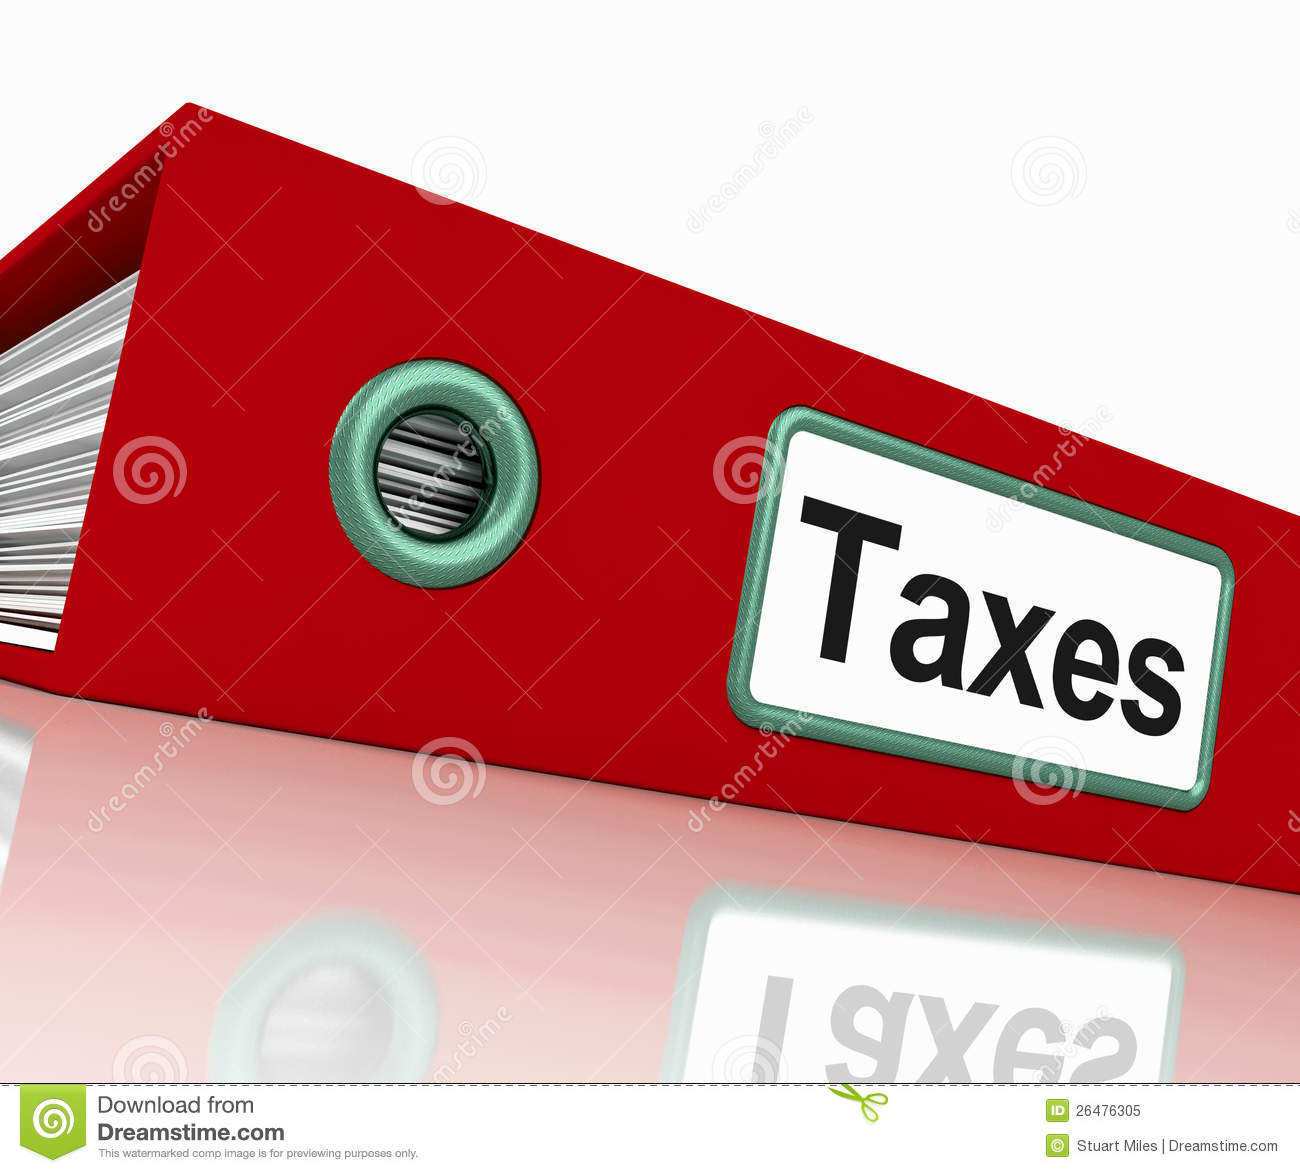 where to report book royalties on tax return Royalties are self-employment income and generally subject to taxes  writing  for profit, would not have to pay self-employment taxes on the book's royalties   and other earnings, comes to $400 or more, you must report it on your tax return.